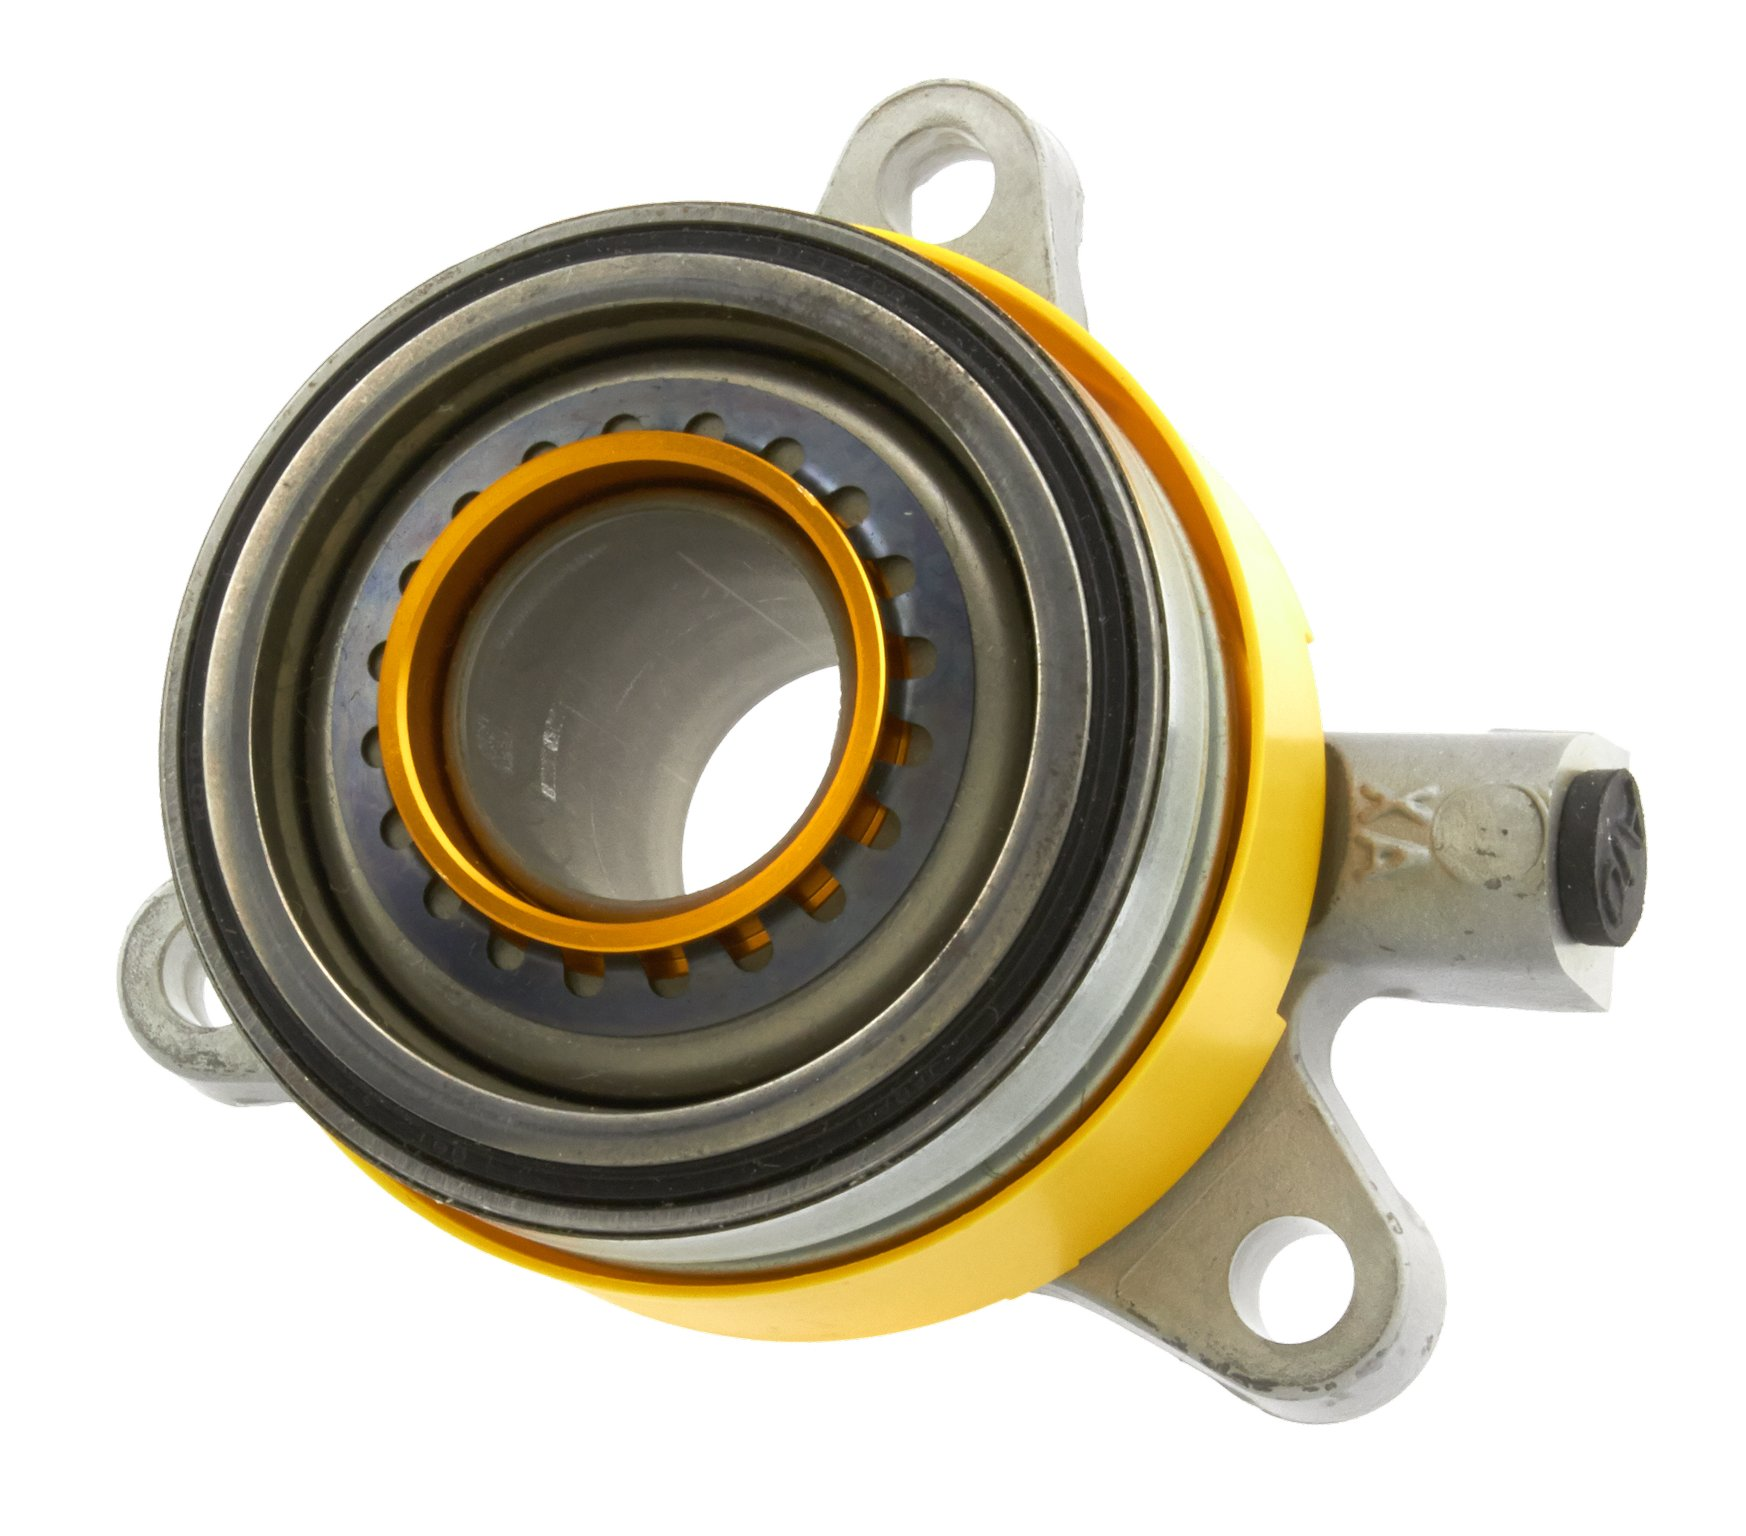 hight resolution of 2011 scion tc clutch release bearing and slave cylinder assembly a8 sct 001